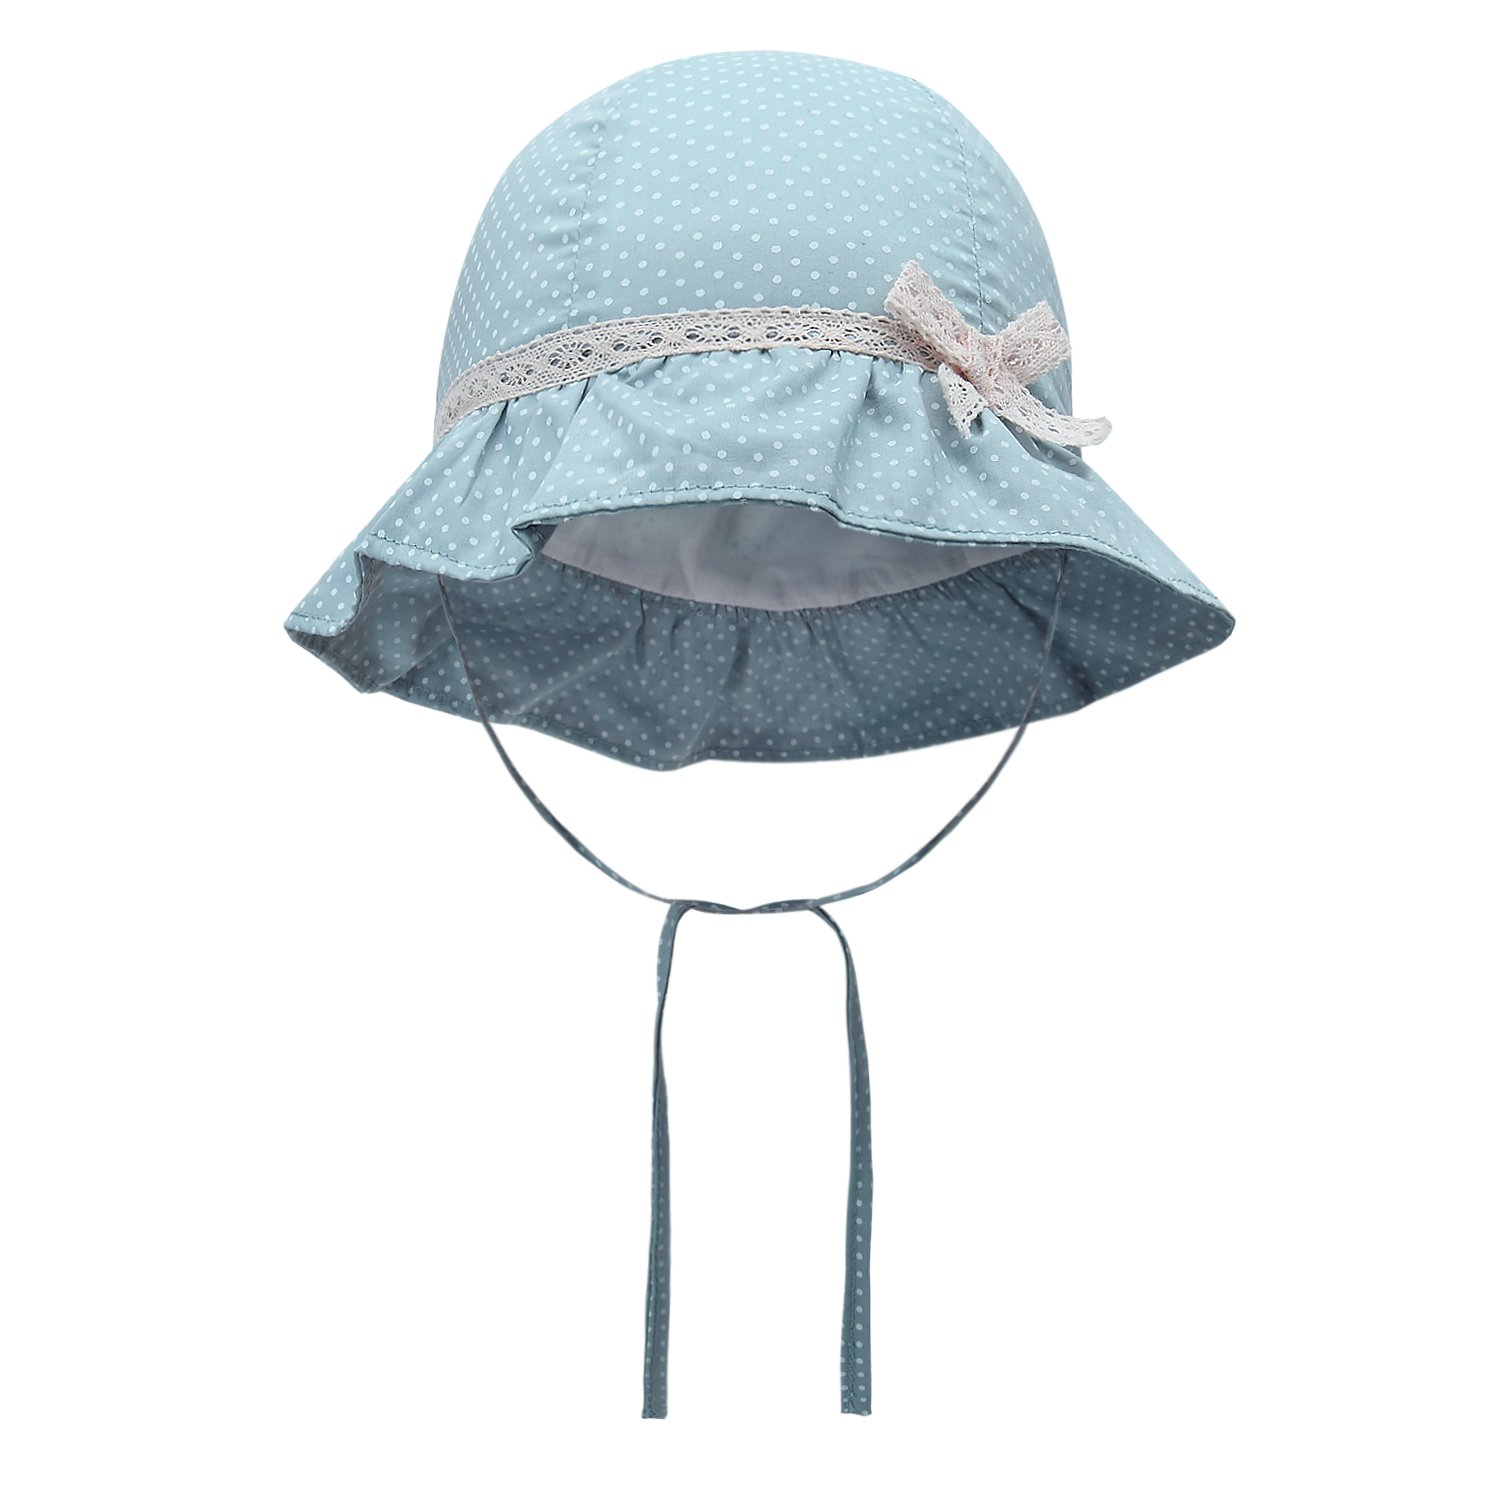 Baby Girl Sun Hats Toddler Girl Summer Hats Lace Bowknot Hats 0-6Y (50cm(19.6in Head Circumference), Blue)